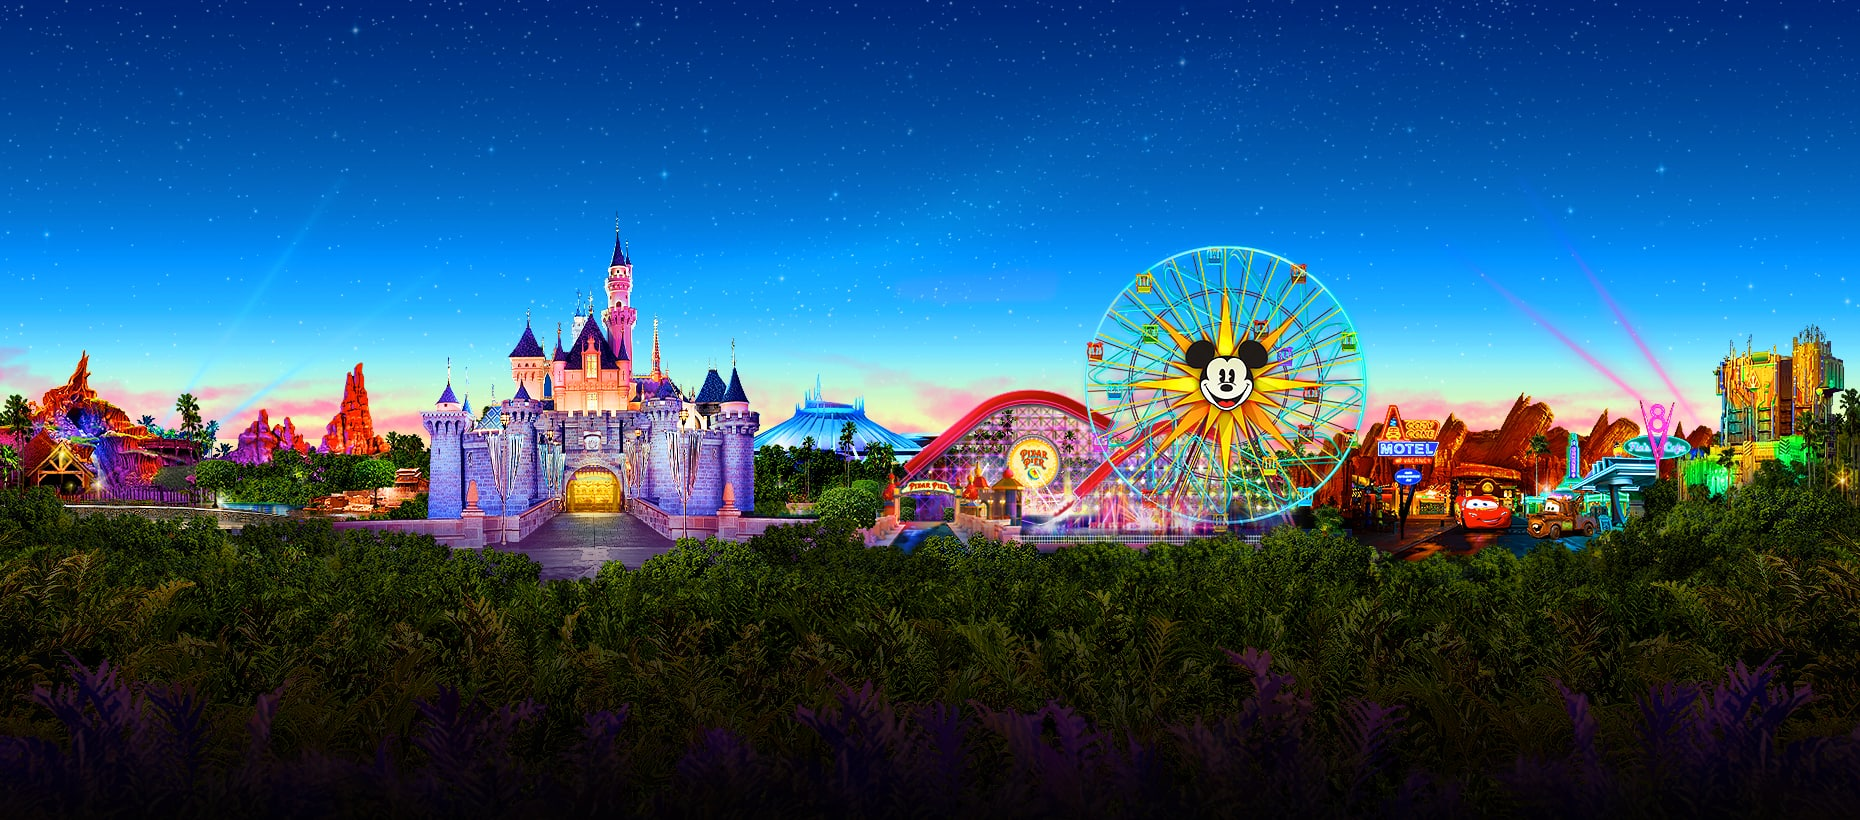 A cartoon like picture that depicts Disneyland Resorts 2 theme parks and  includes images of Sleeping